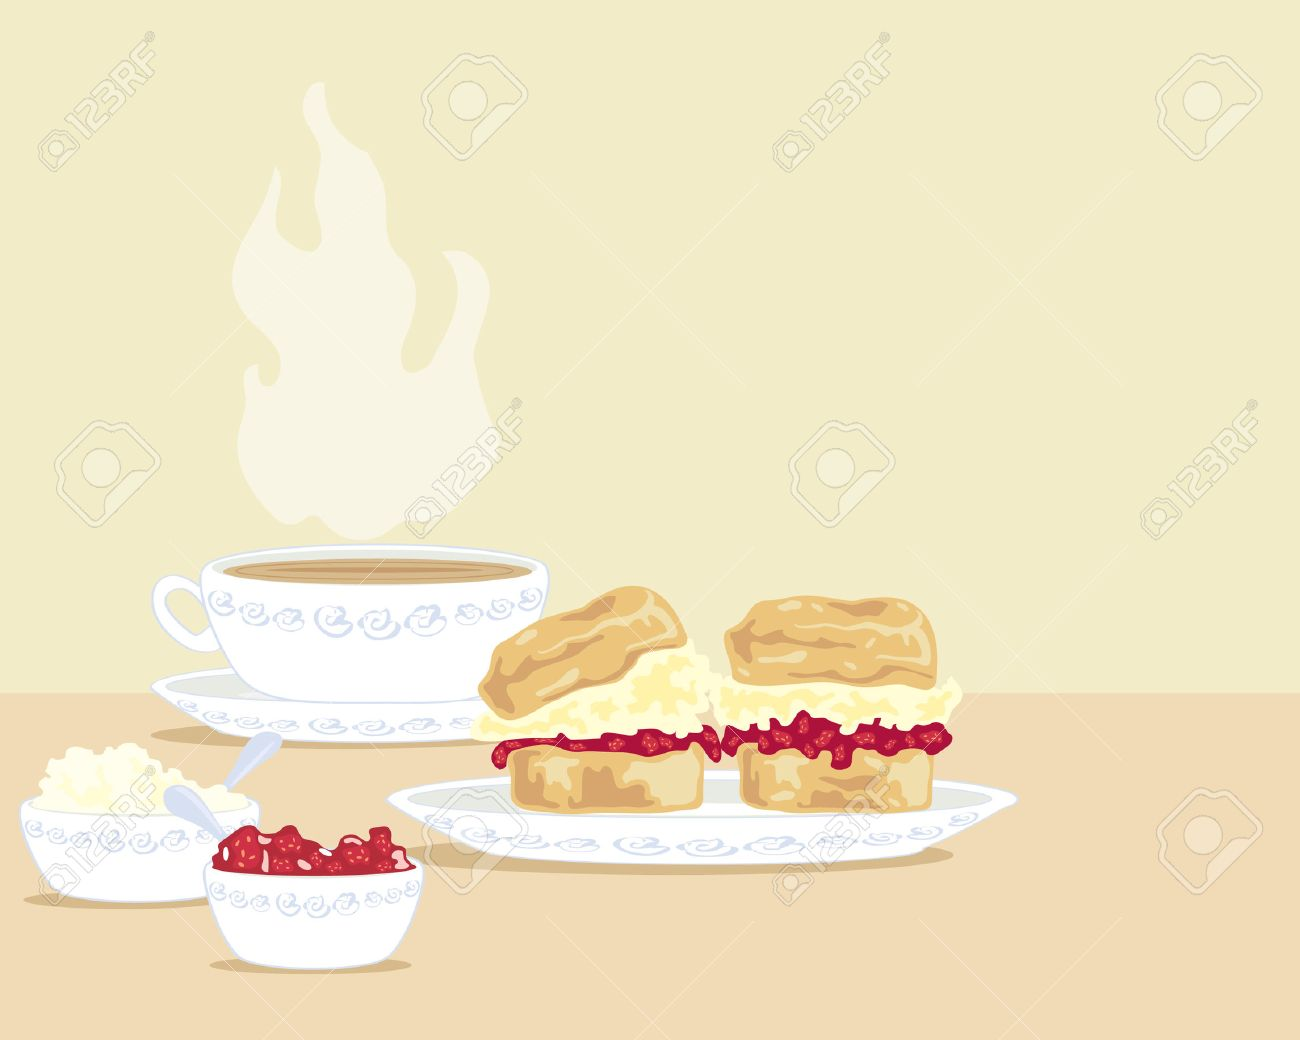 a hand drawn illustration of a cup of tea with two scones on a plate and a bowl of clotted cream and a bowl of jam Stock Vector - 7201803